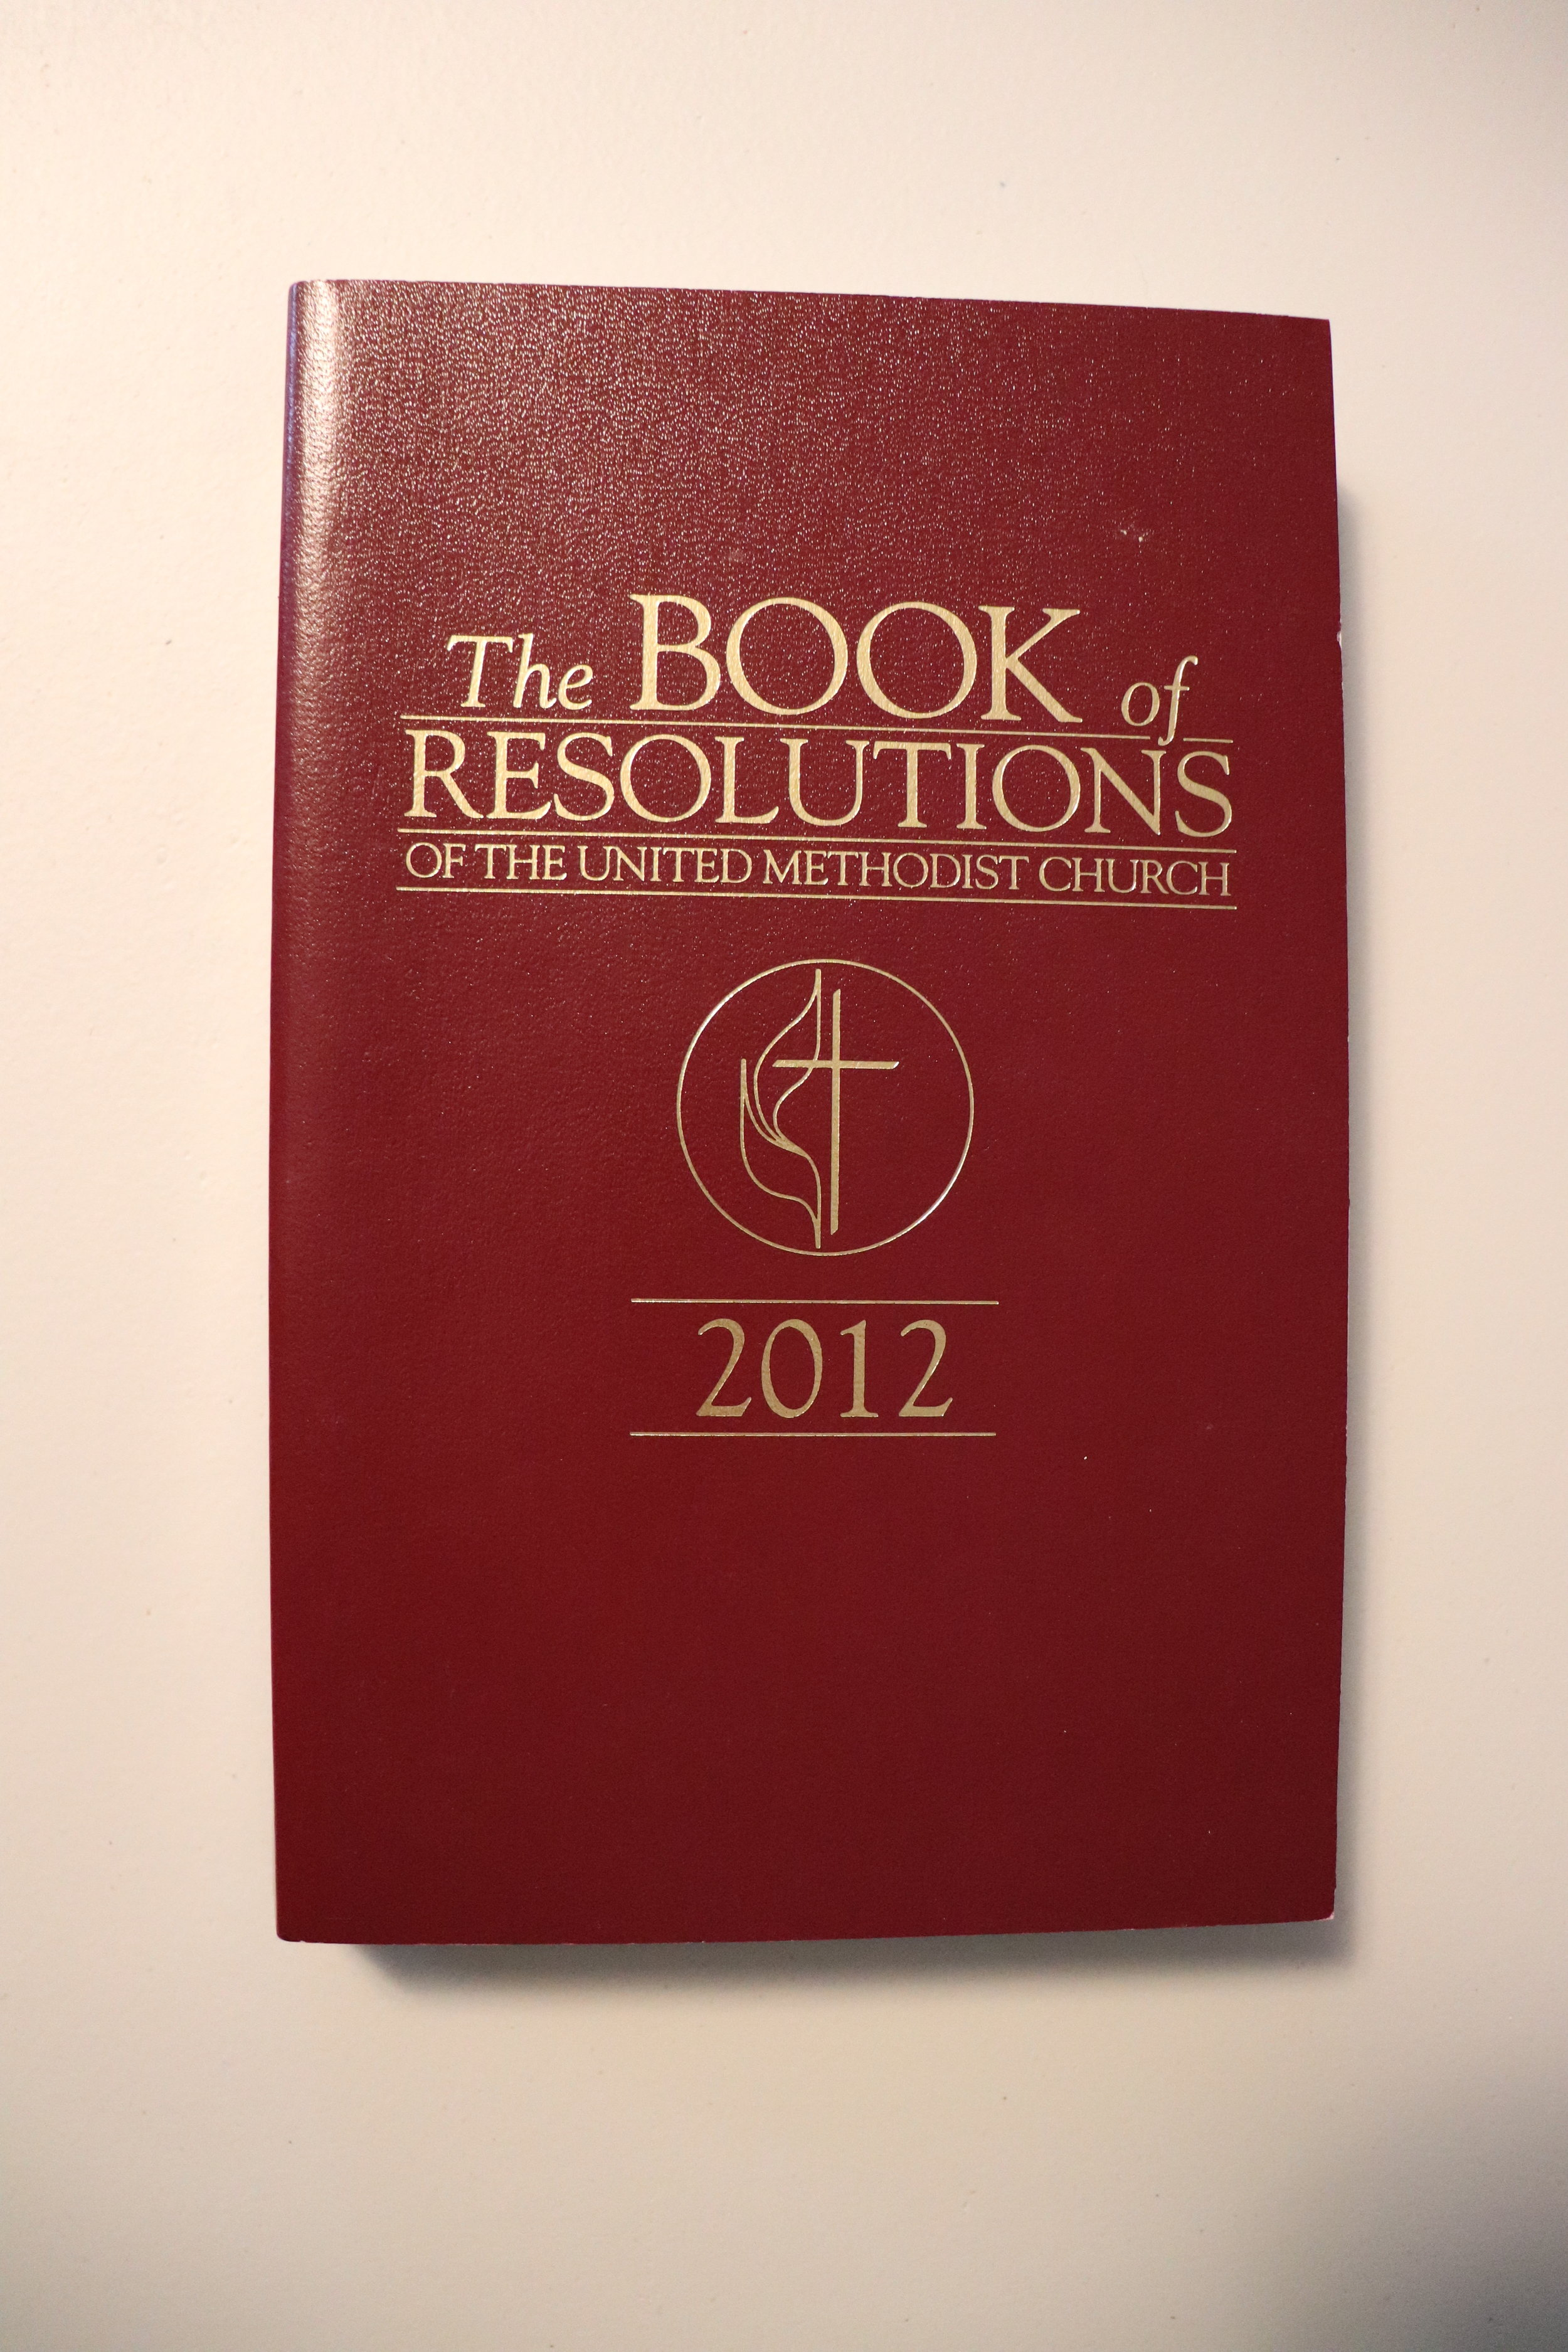 'The book of Resolutions' further represents the positions held by the United Methodist Church. -